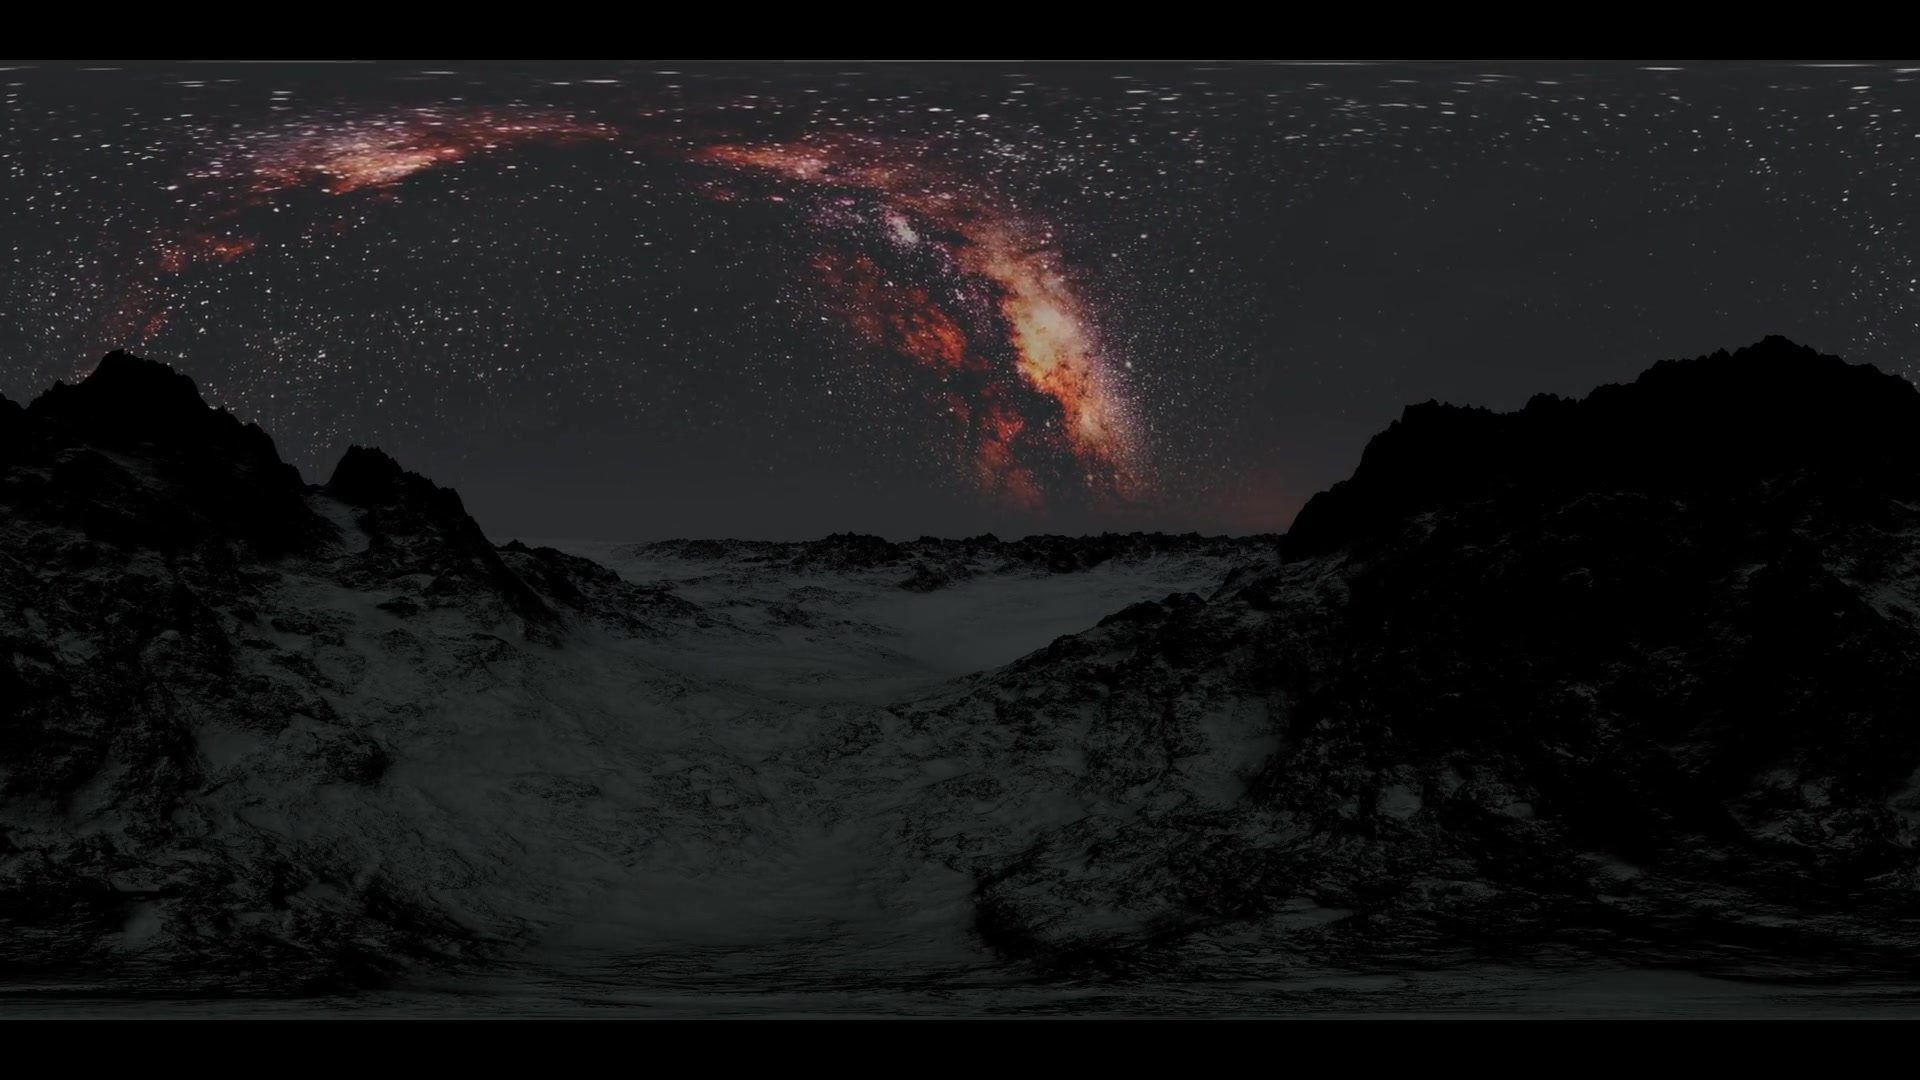 6K Milky Way stars at sunrise in mountains virtual reality 360 degree video. Elements of this image furnished by NASA